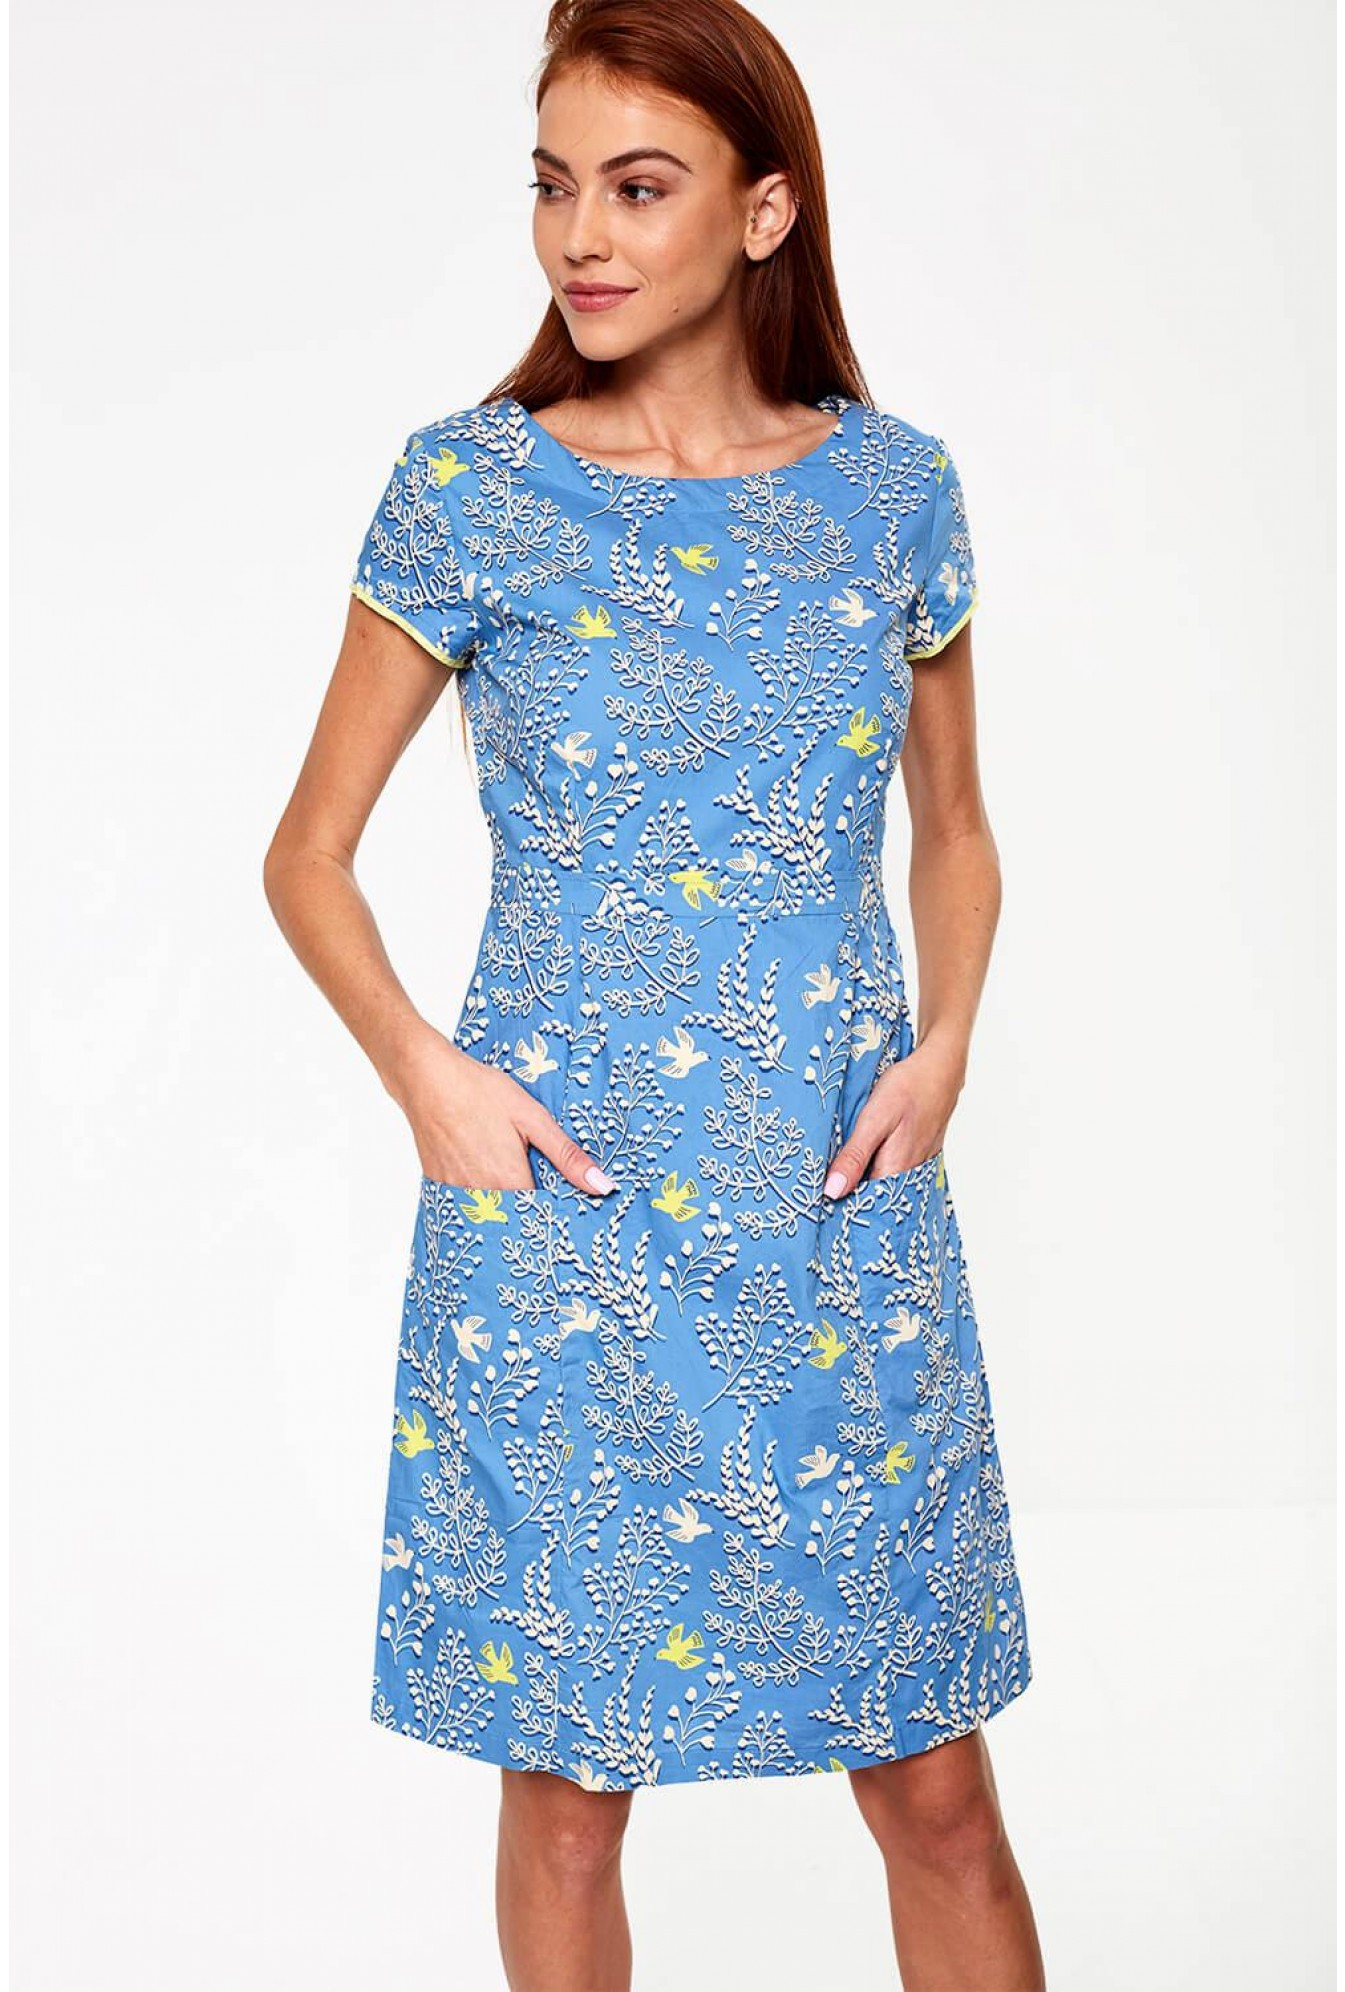 b9380b617c7c77 Lily & Me Harbourside Dove Print Dress in Blue | iCLOTHING